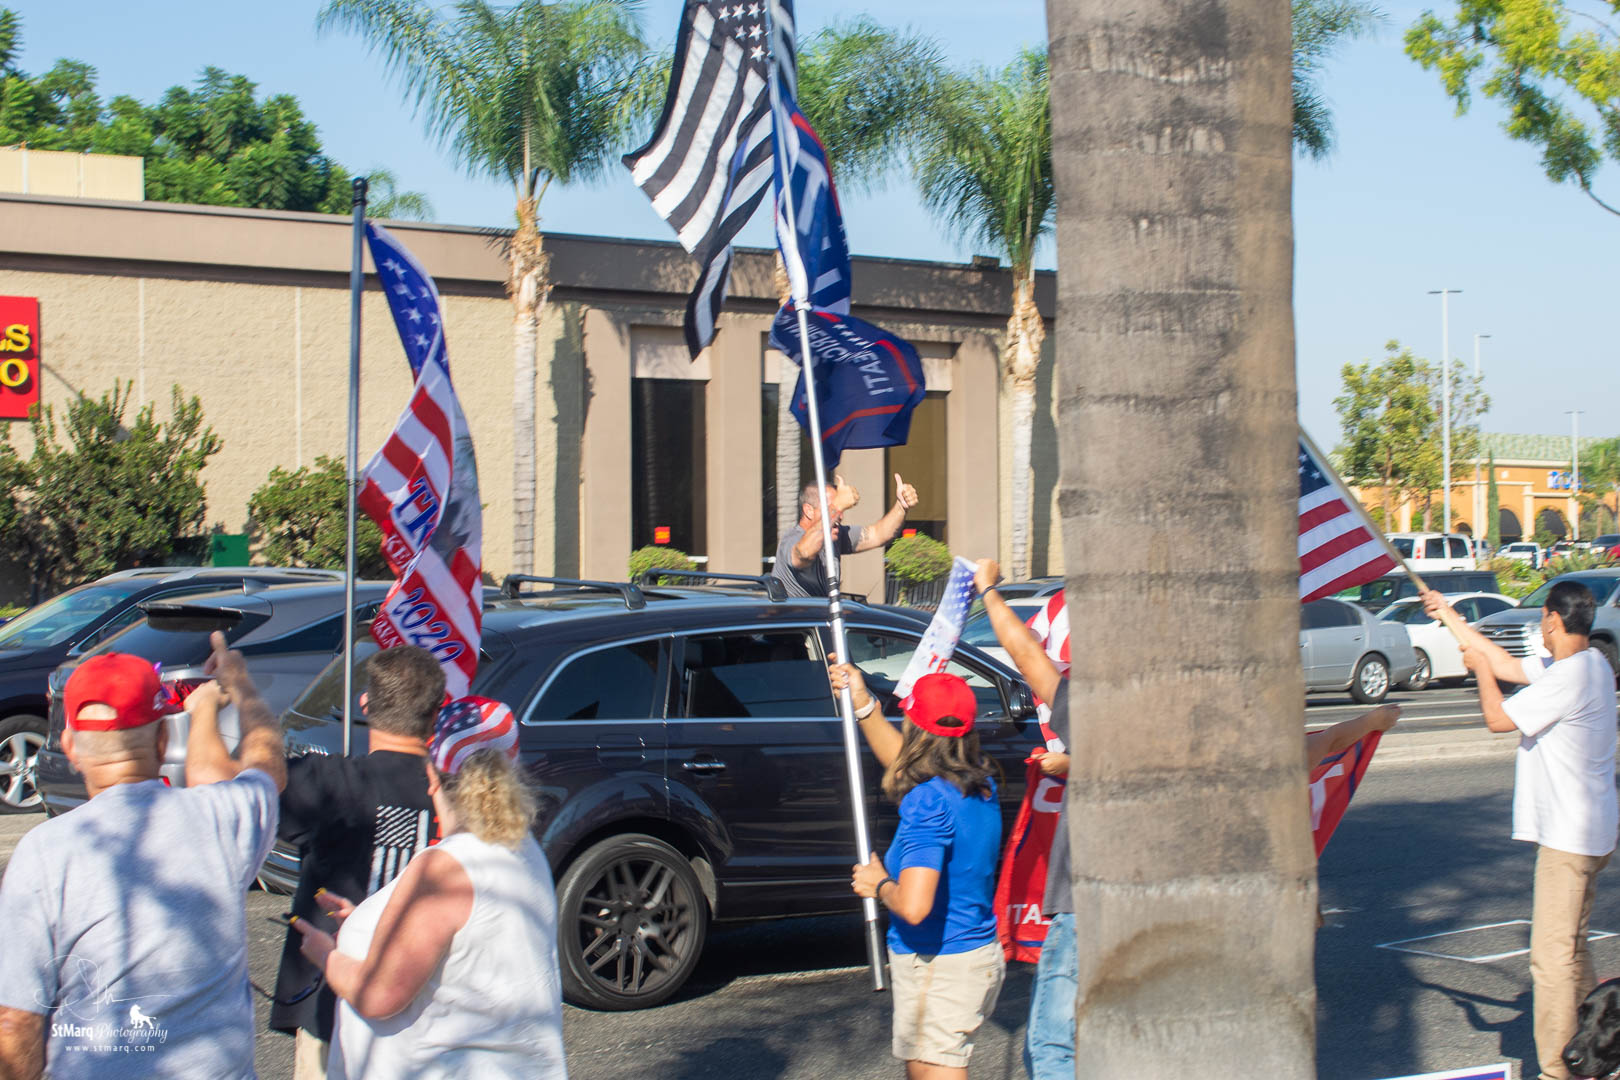 Backers of president Trump hold flags to show their support on the corner of Beach Blvd. and Imperial Highway in La Habra, CA on Sunday, October 18, 2020. They were attempting to show that California has supporters of the president even though it is usually written off as a Democrat stronghold.